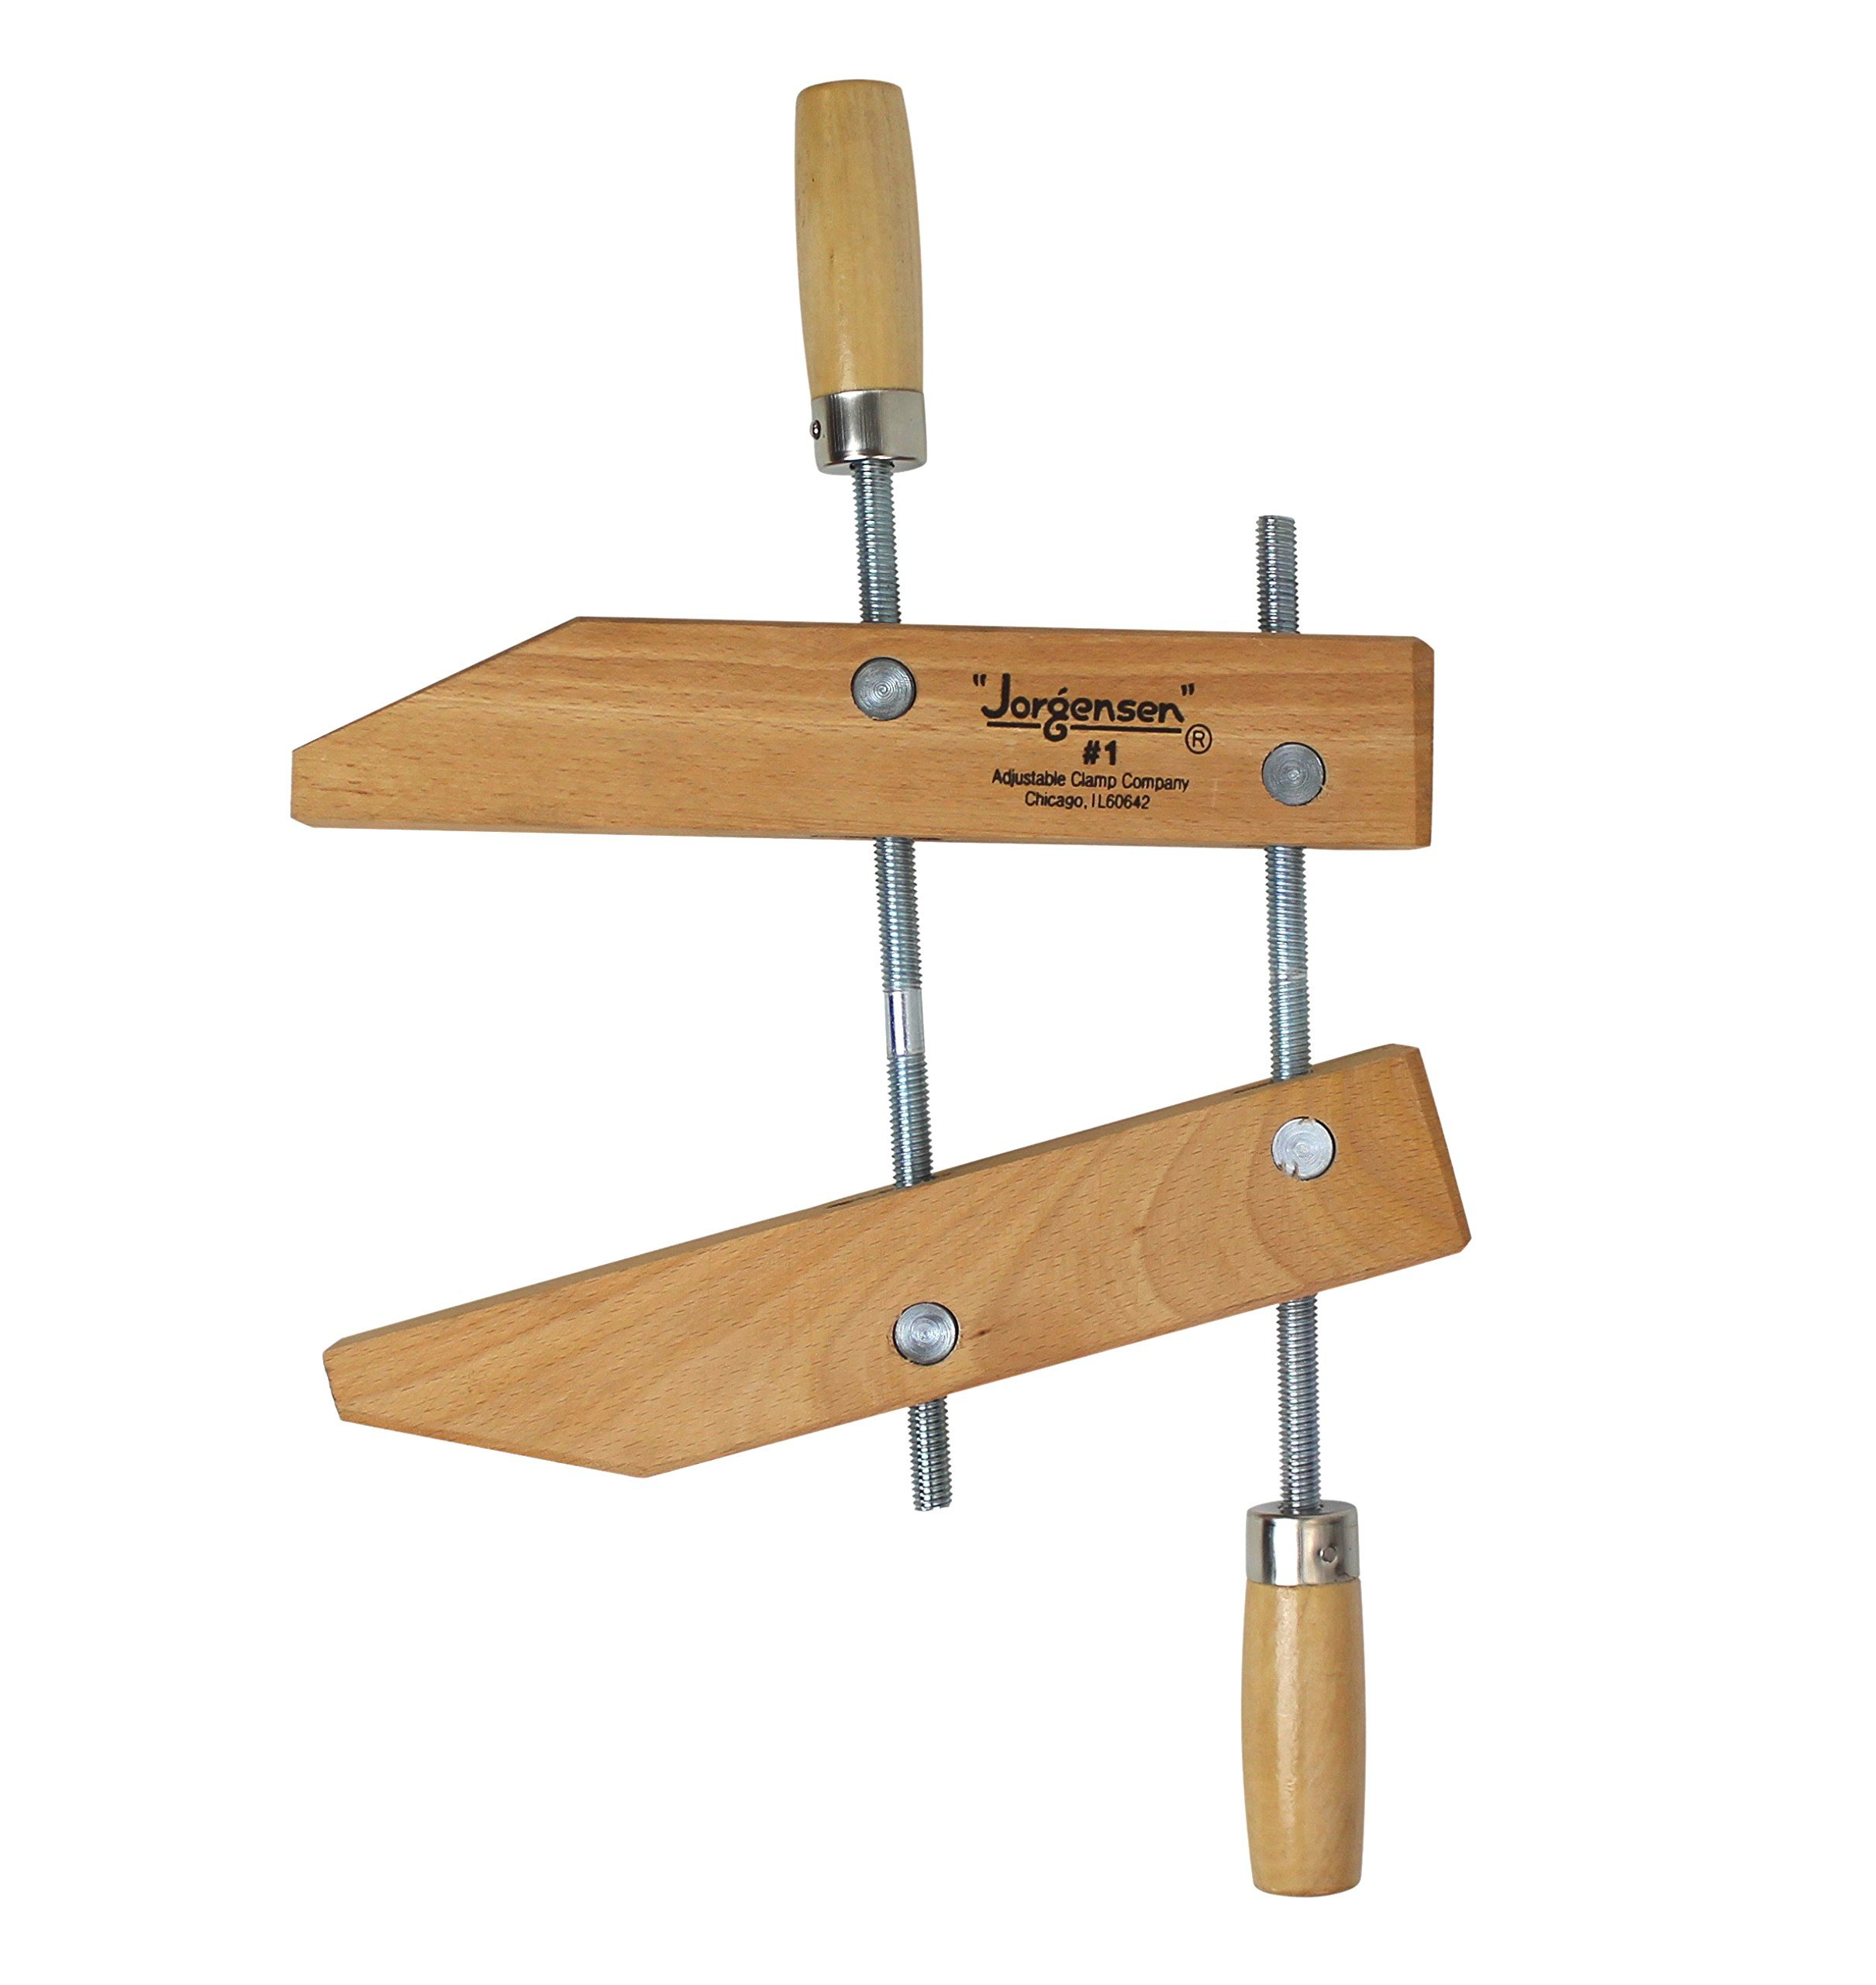 Jorgensen Size 1 6-Inch Handscrews Wood Clamp by Pony Tools (Image #1)